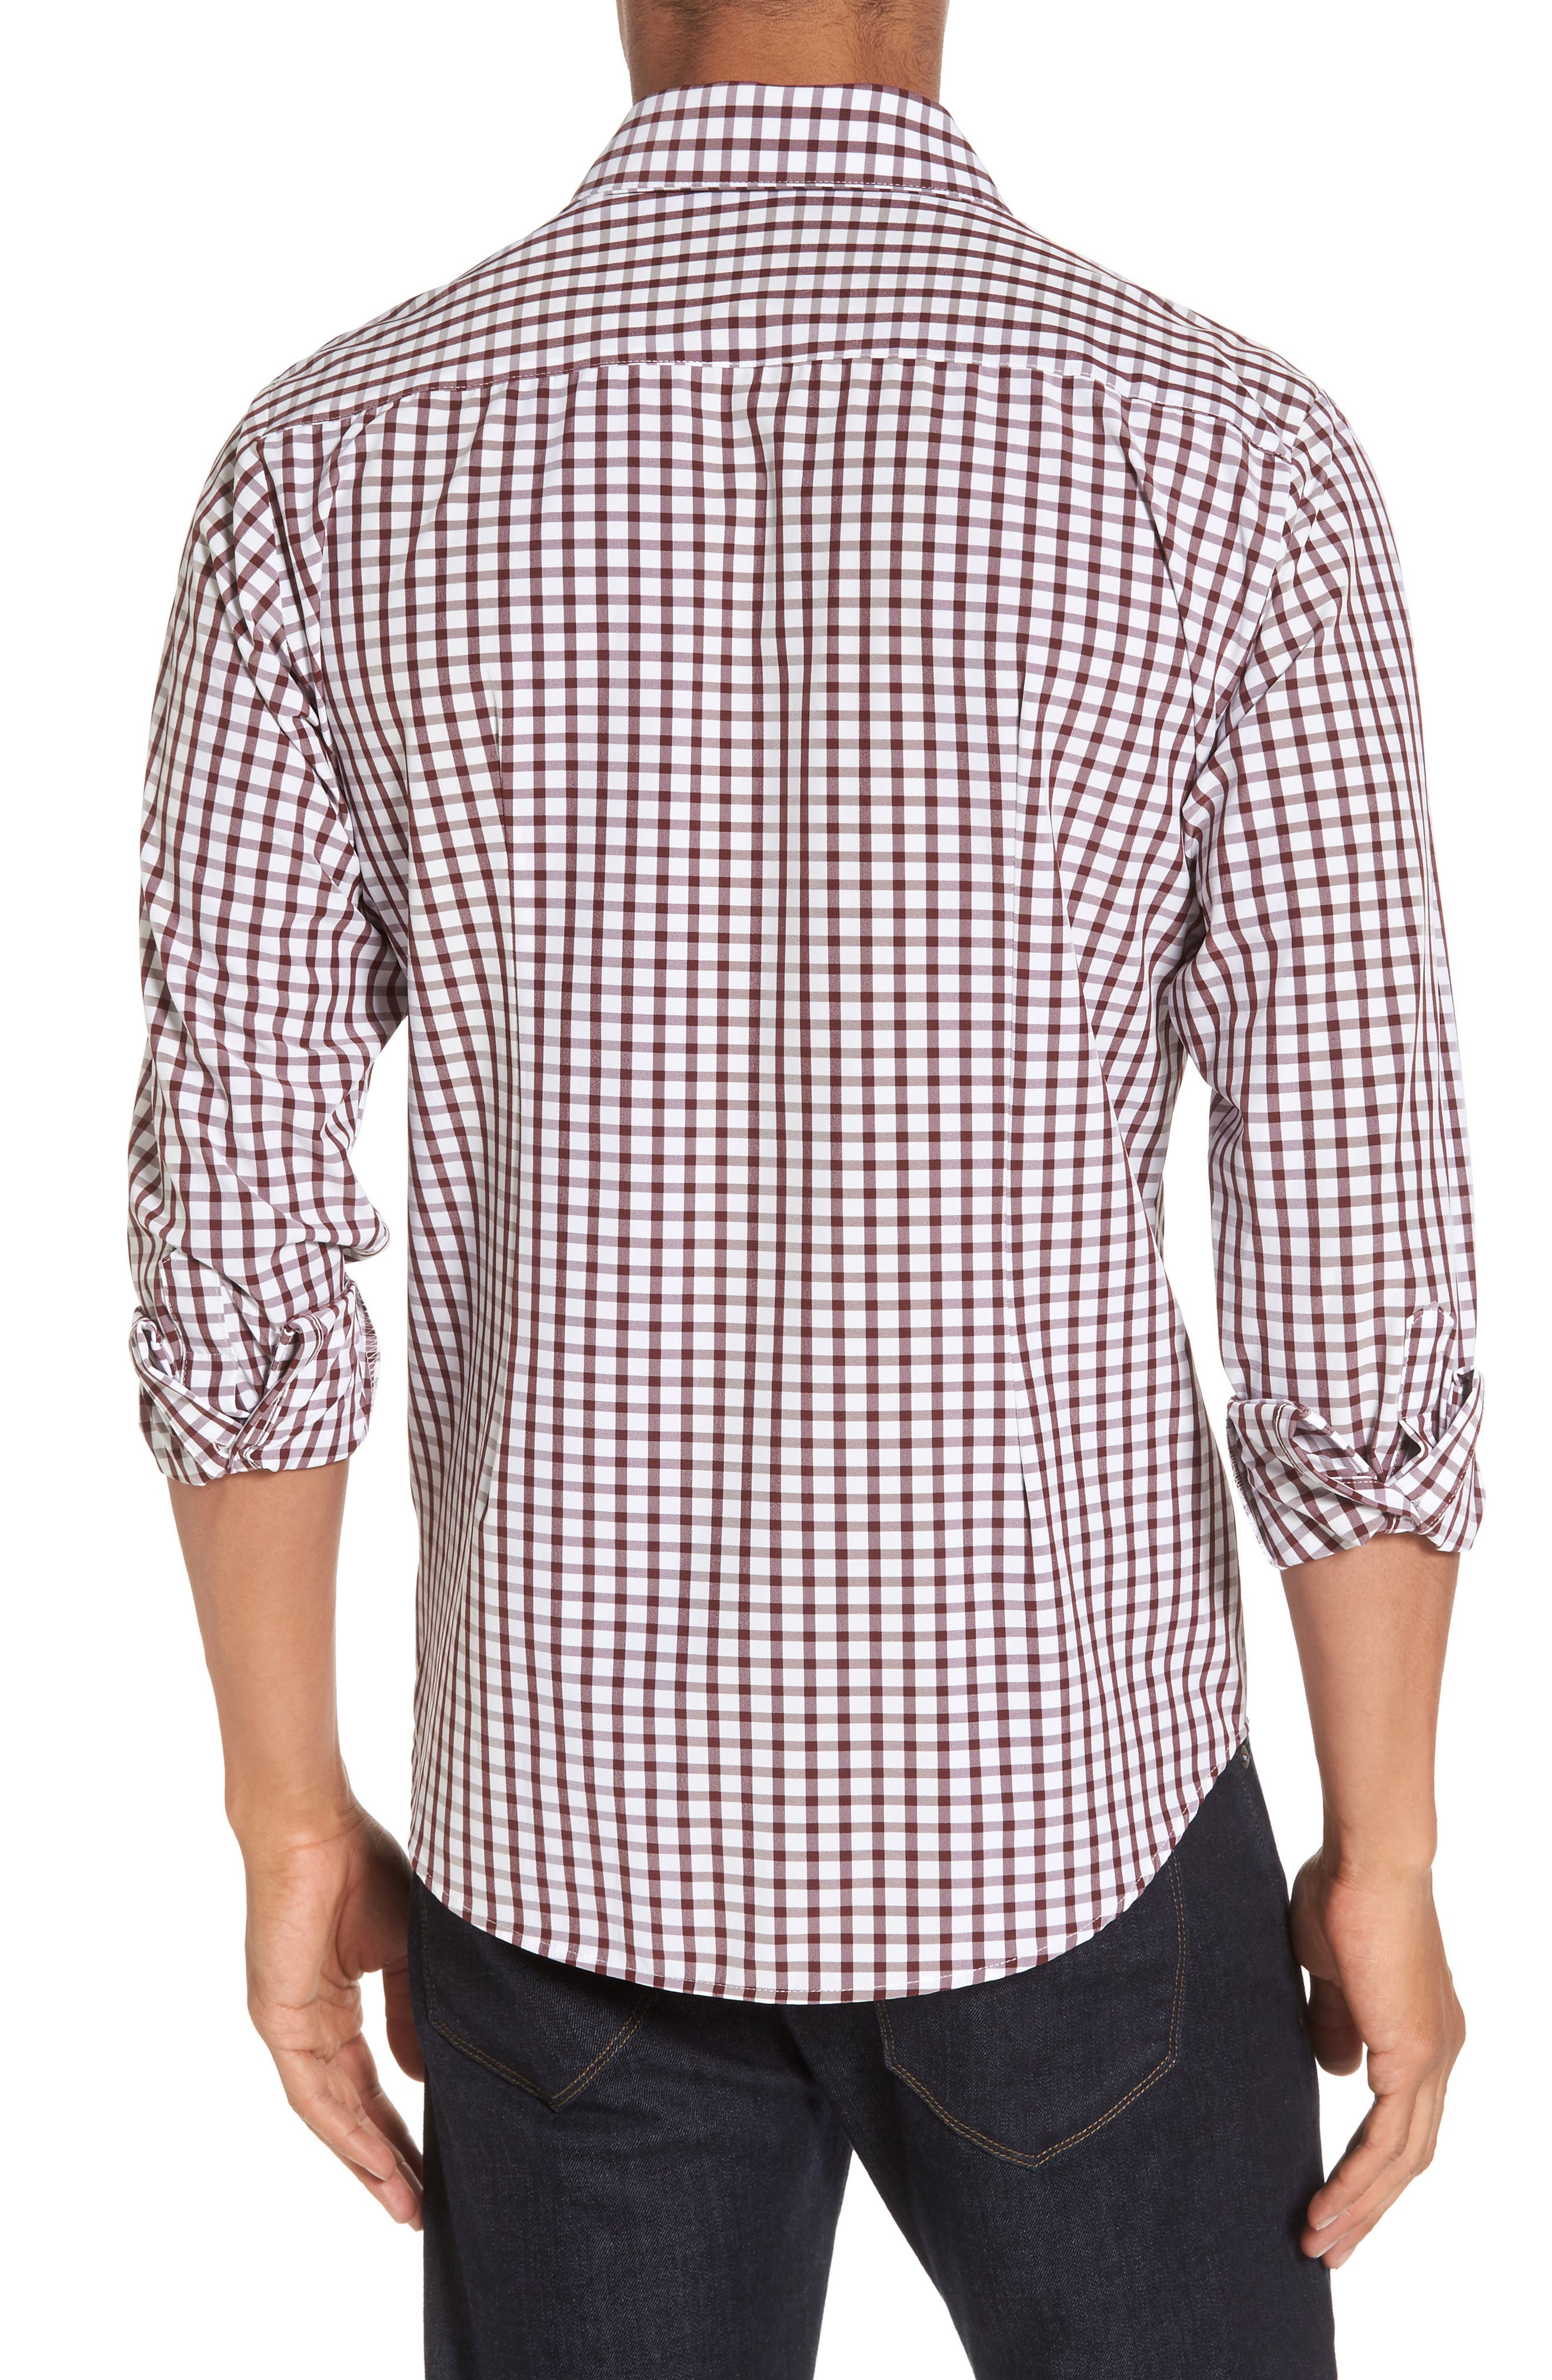 Cooper Check Performance Sport Shirt,                             Alternate thumbnail 2, color,                             600